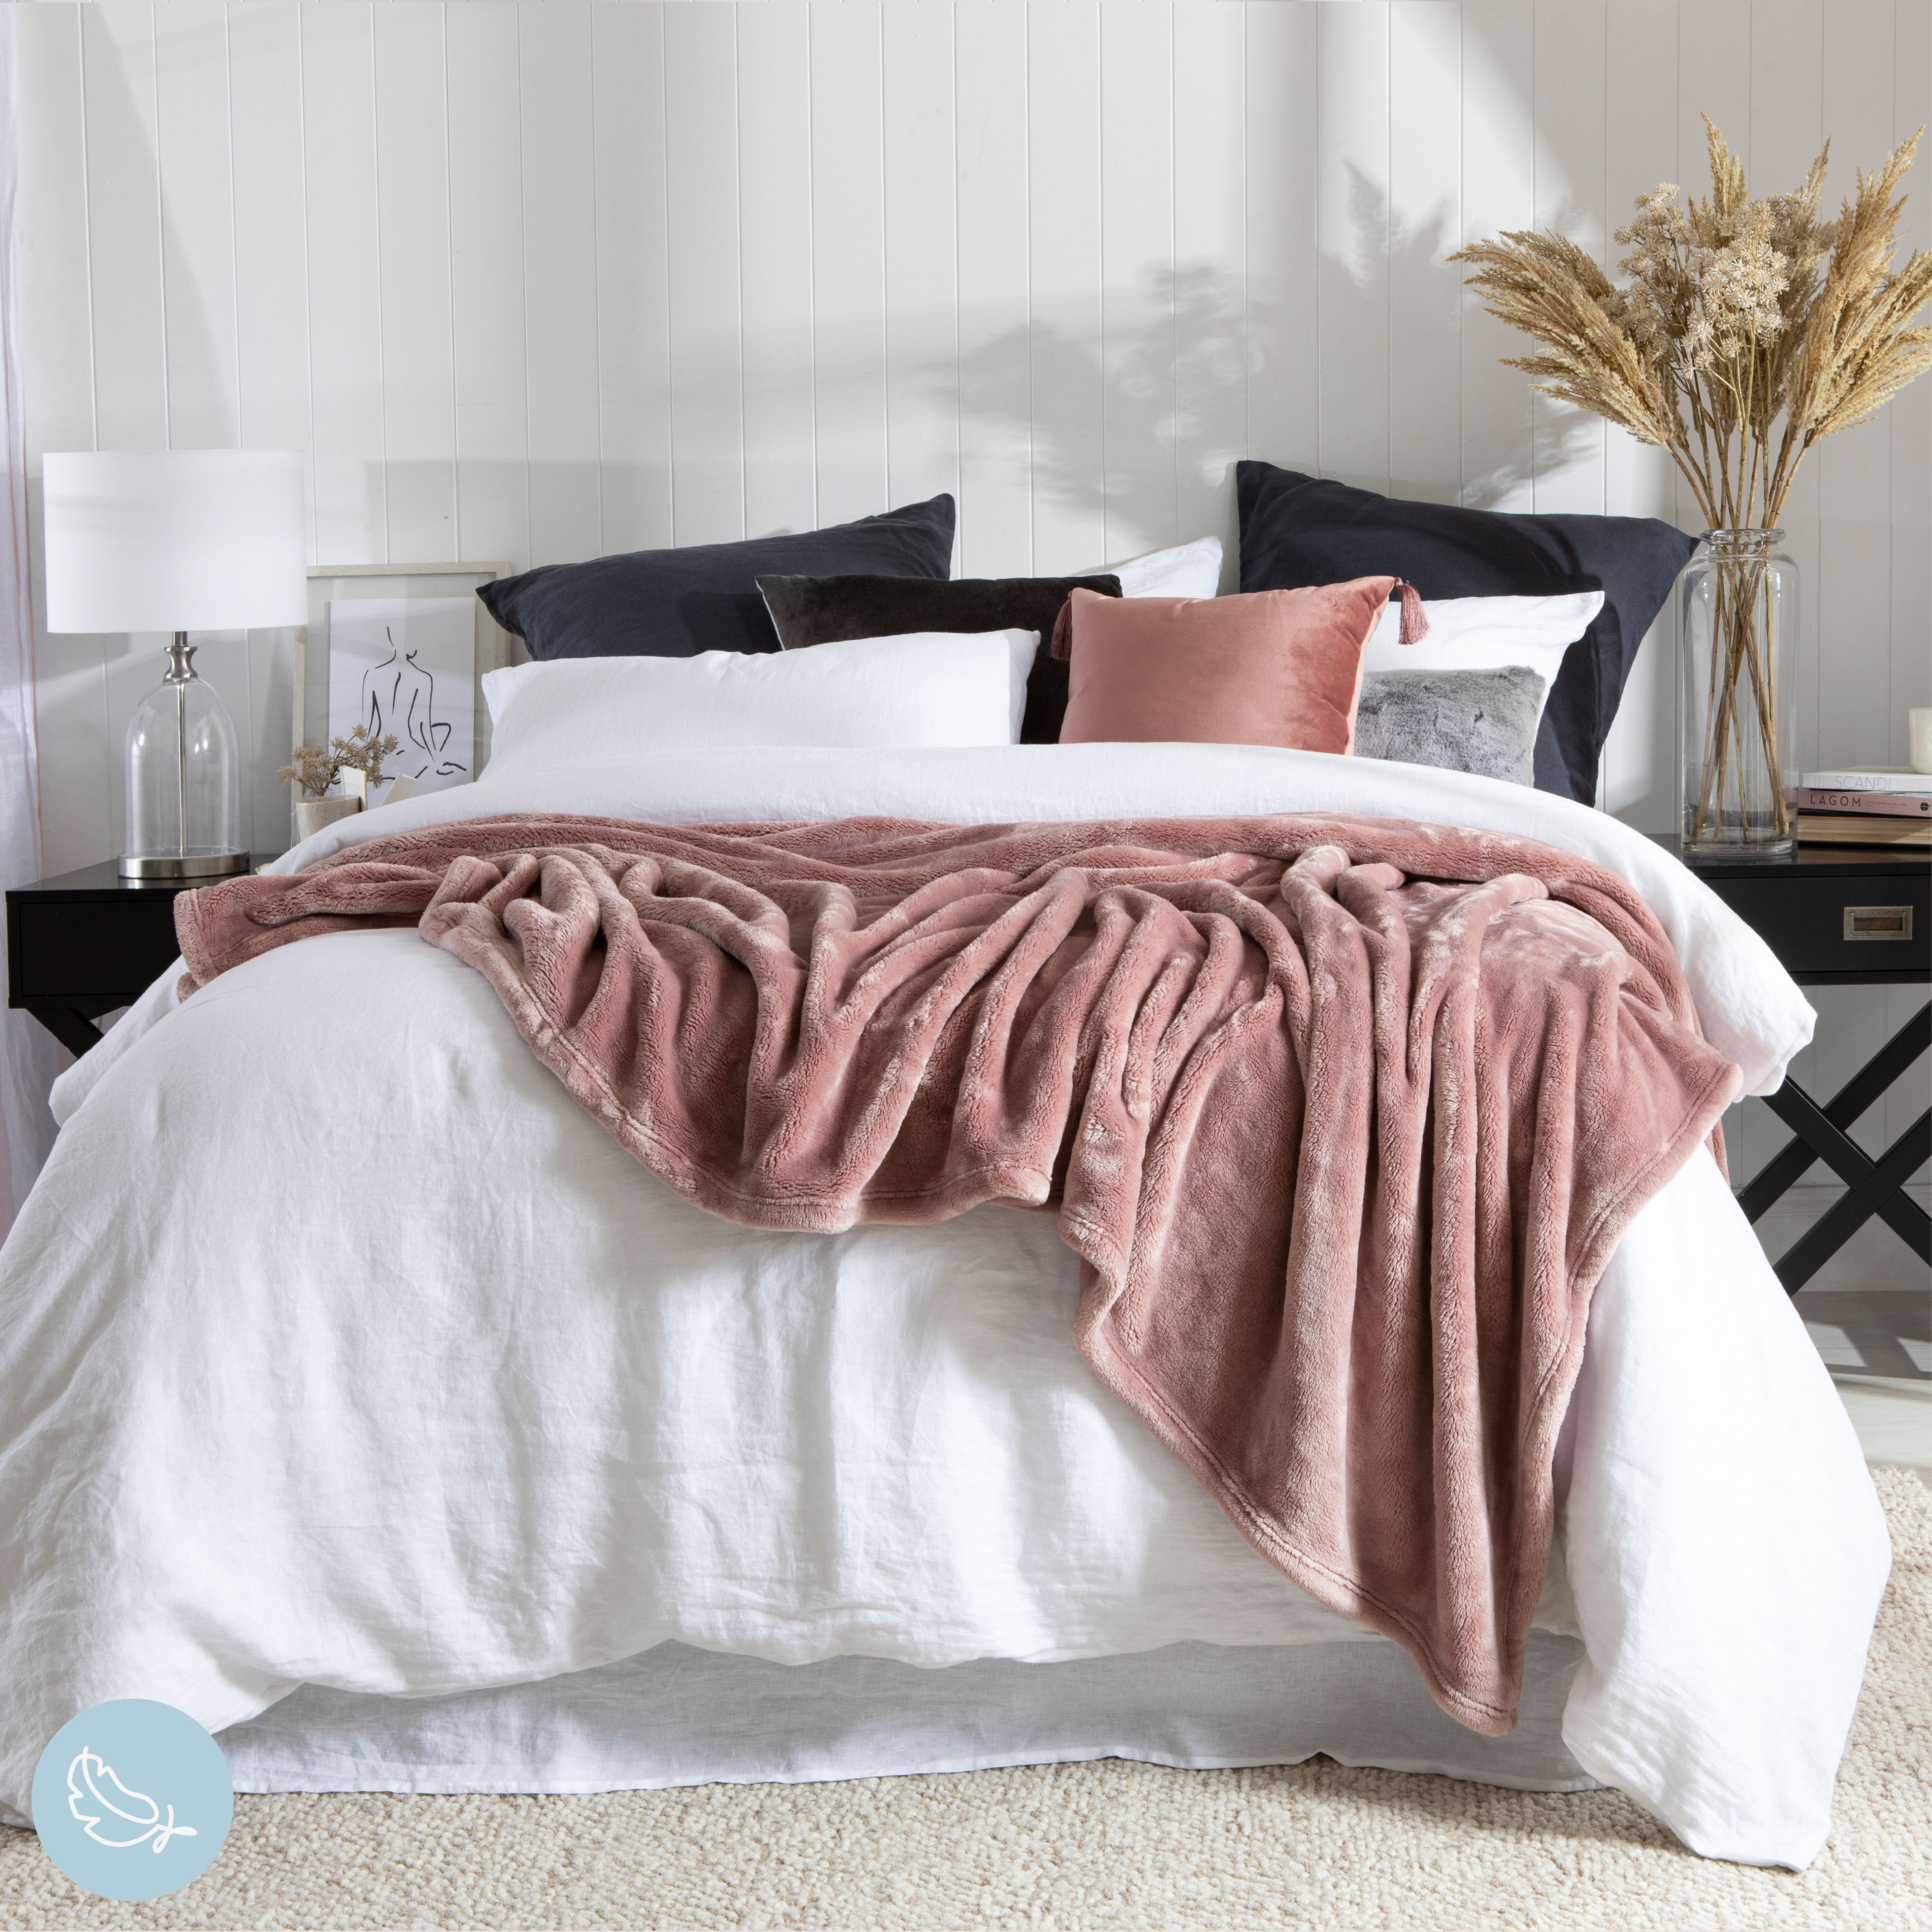 Snuggle up in bed with a beautiful soft blanket as the weather gets cooler! #blanket #bedroomstyle #bedroom #bed #bedroomdecor #diyroomdecor #bedroomstyle #bedroomstyling